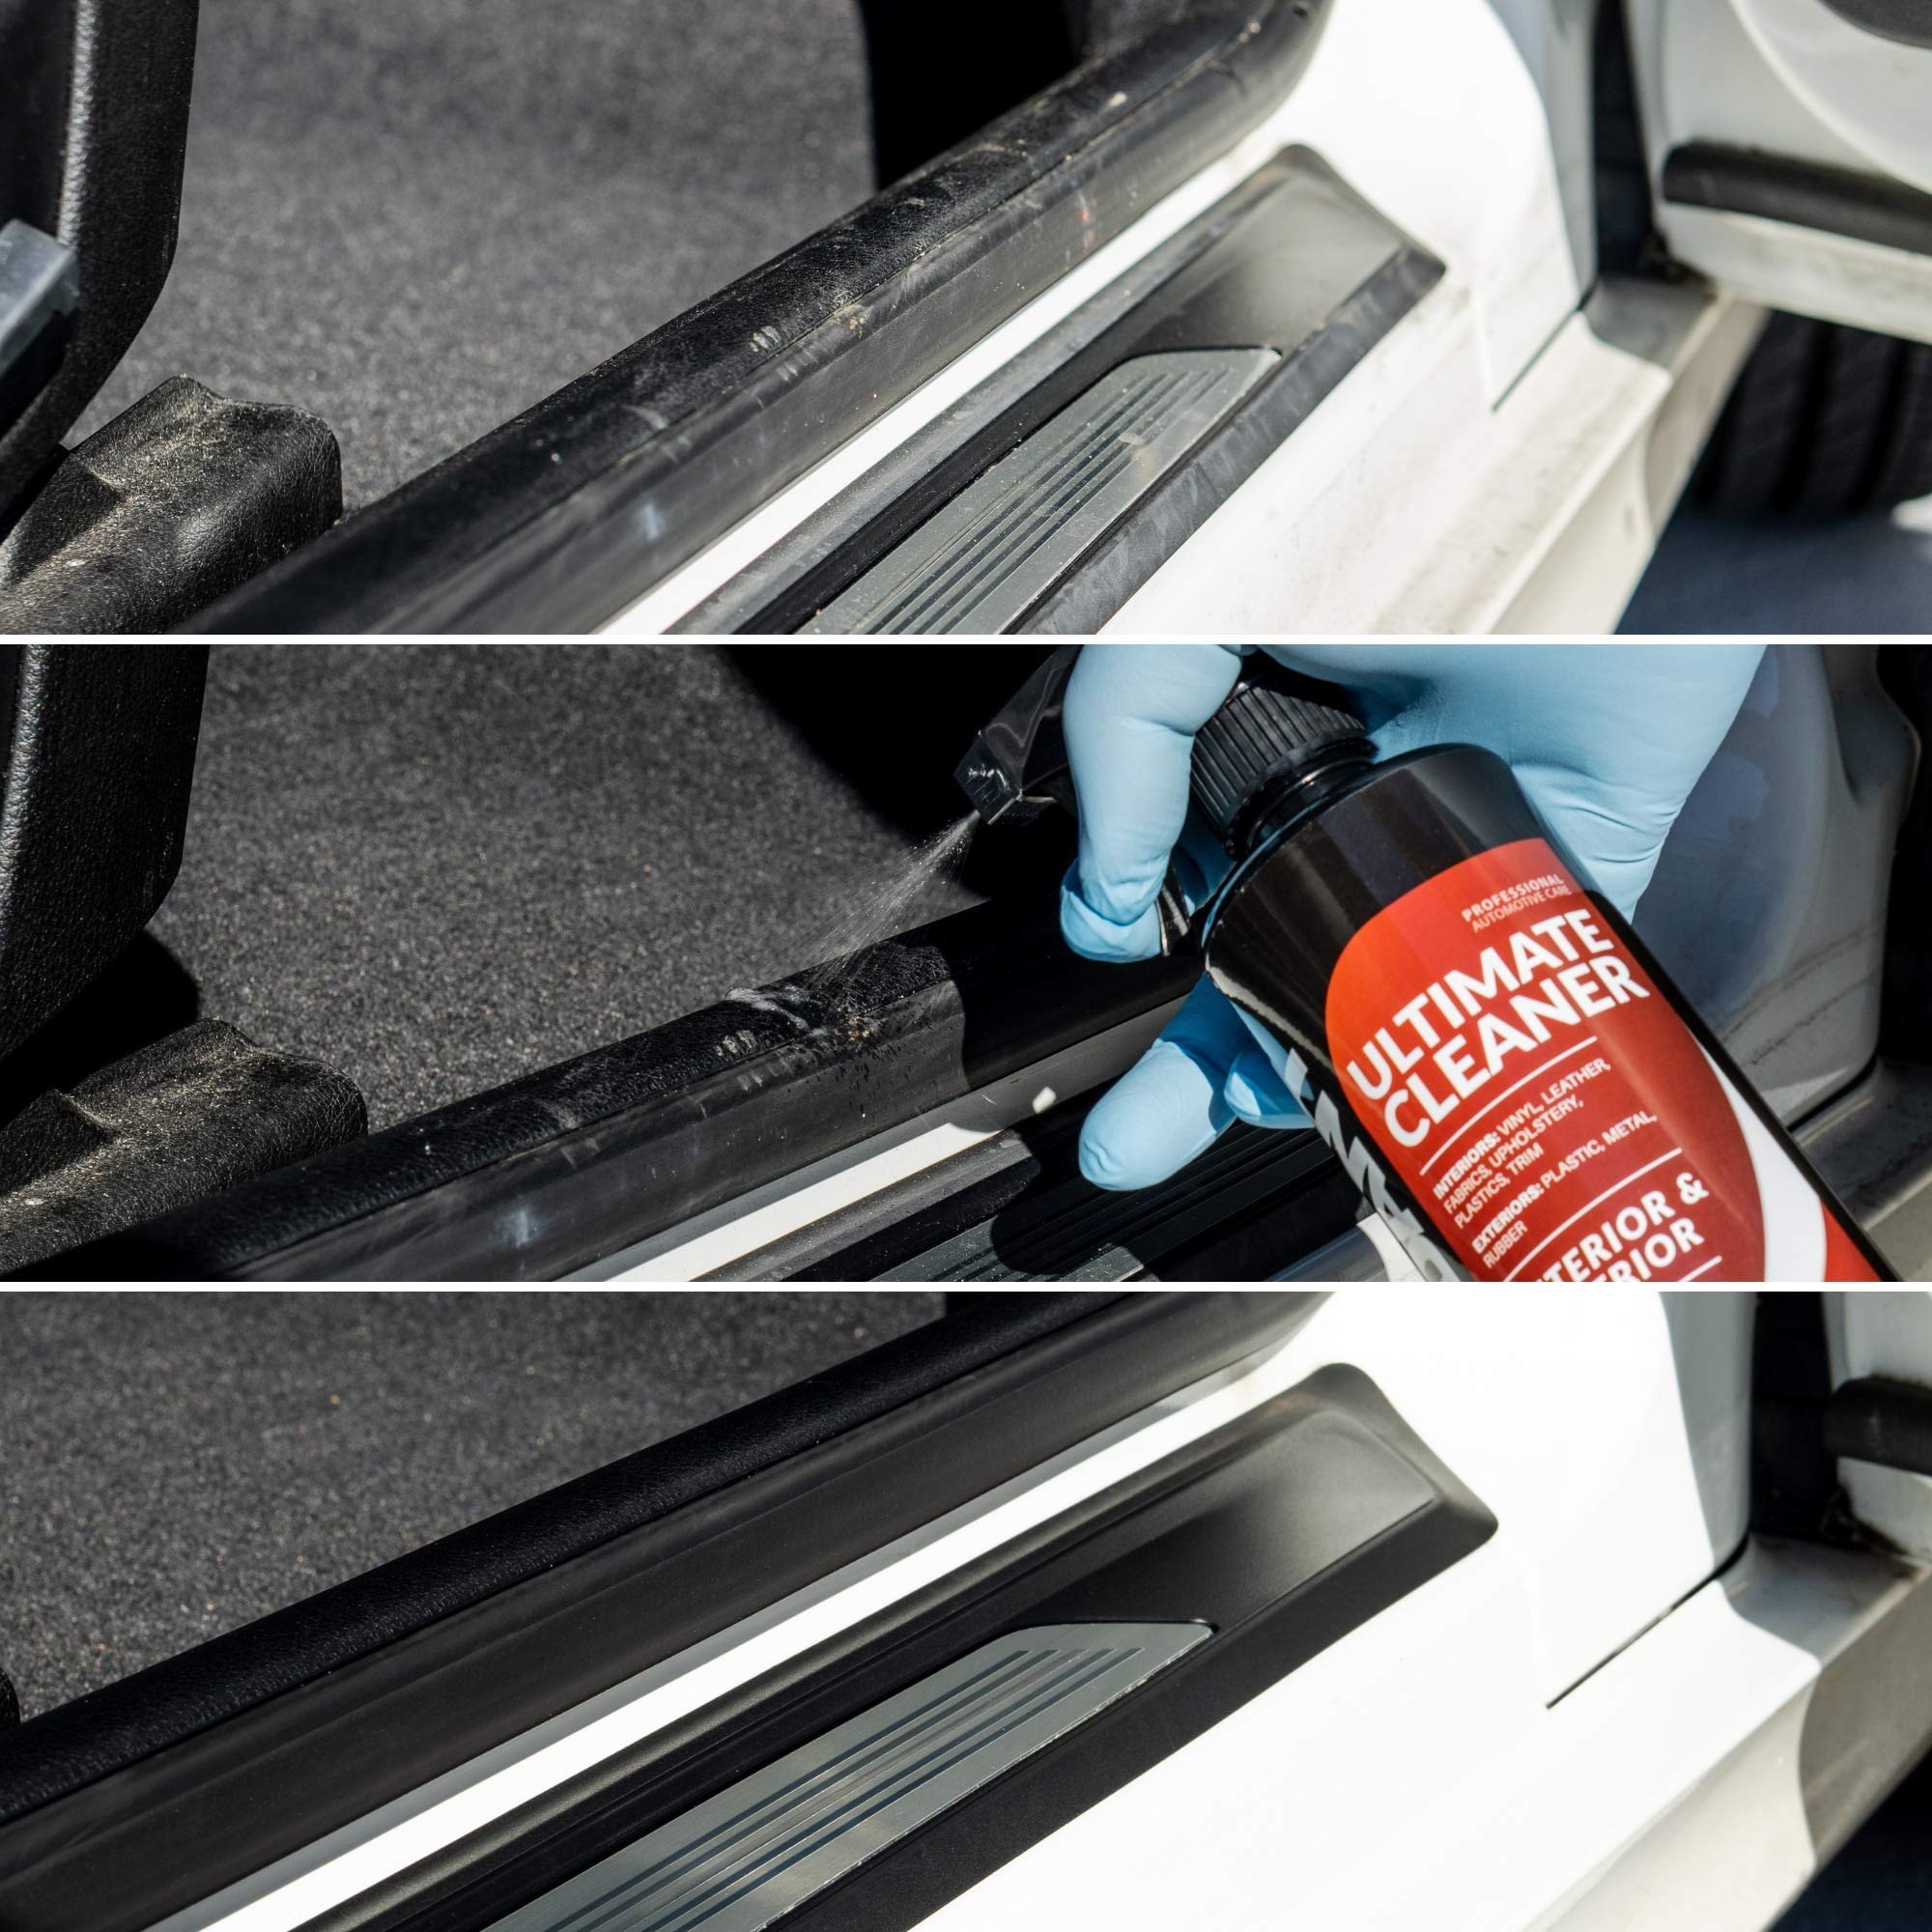 Carfidant Ultimate Car Interior Cleaner - Automotive Interior & Exterior Cleaner All Purpose Cleaner for Car Carpet Upholstery Leather Vinyl Cloth Plastic Seats Trim Engine Mats - Car Cleaning Kit by Carfidant (Image #4)